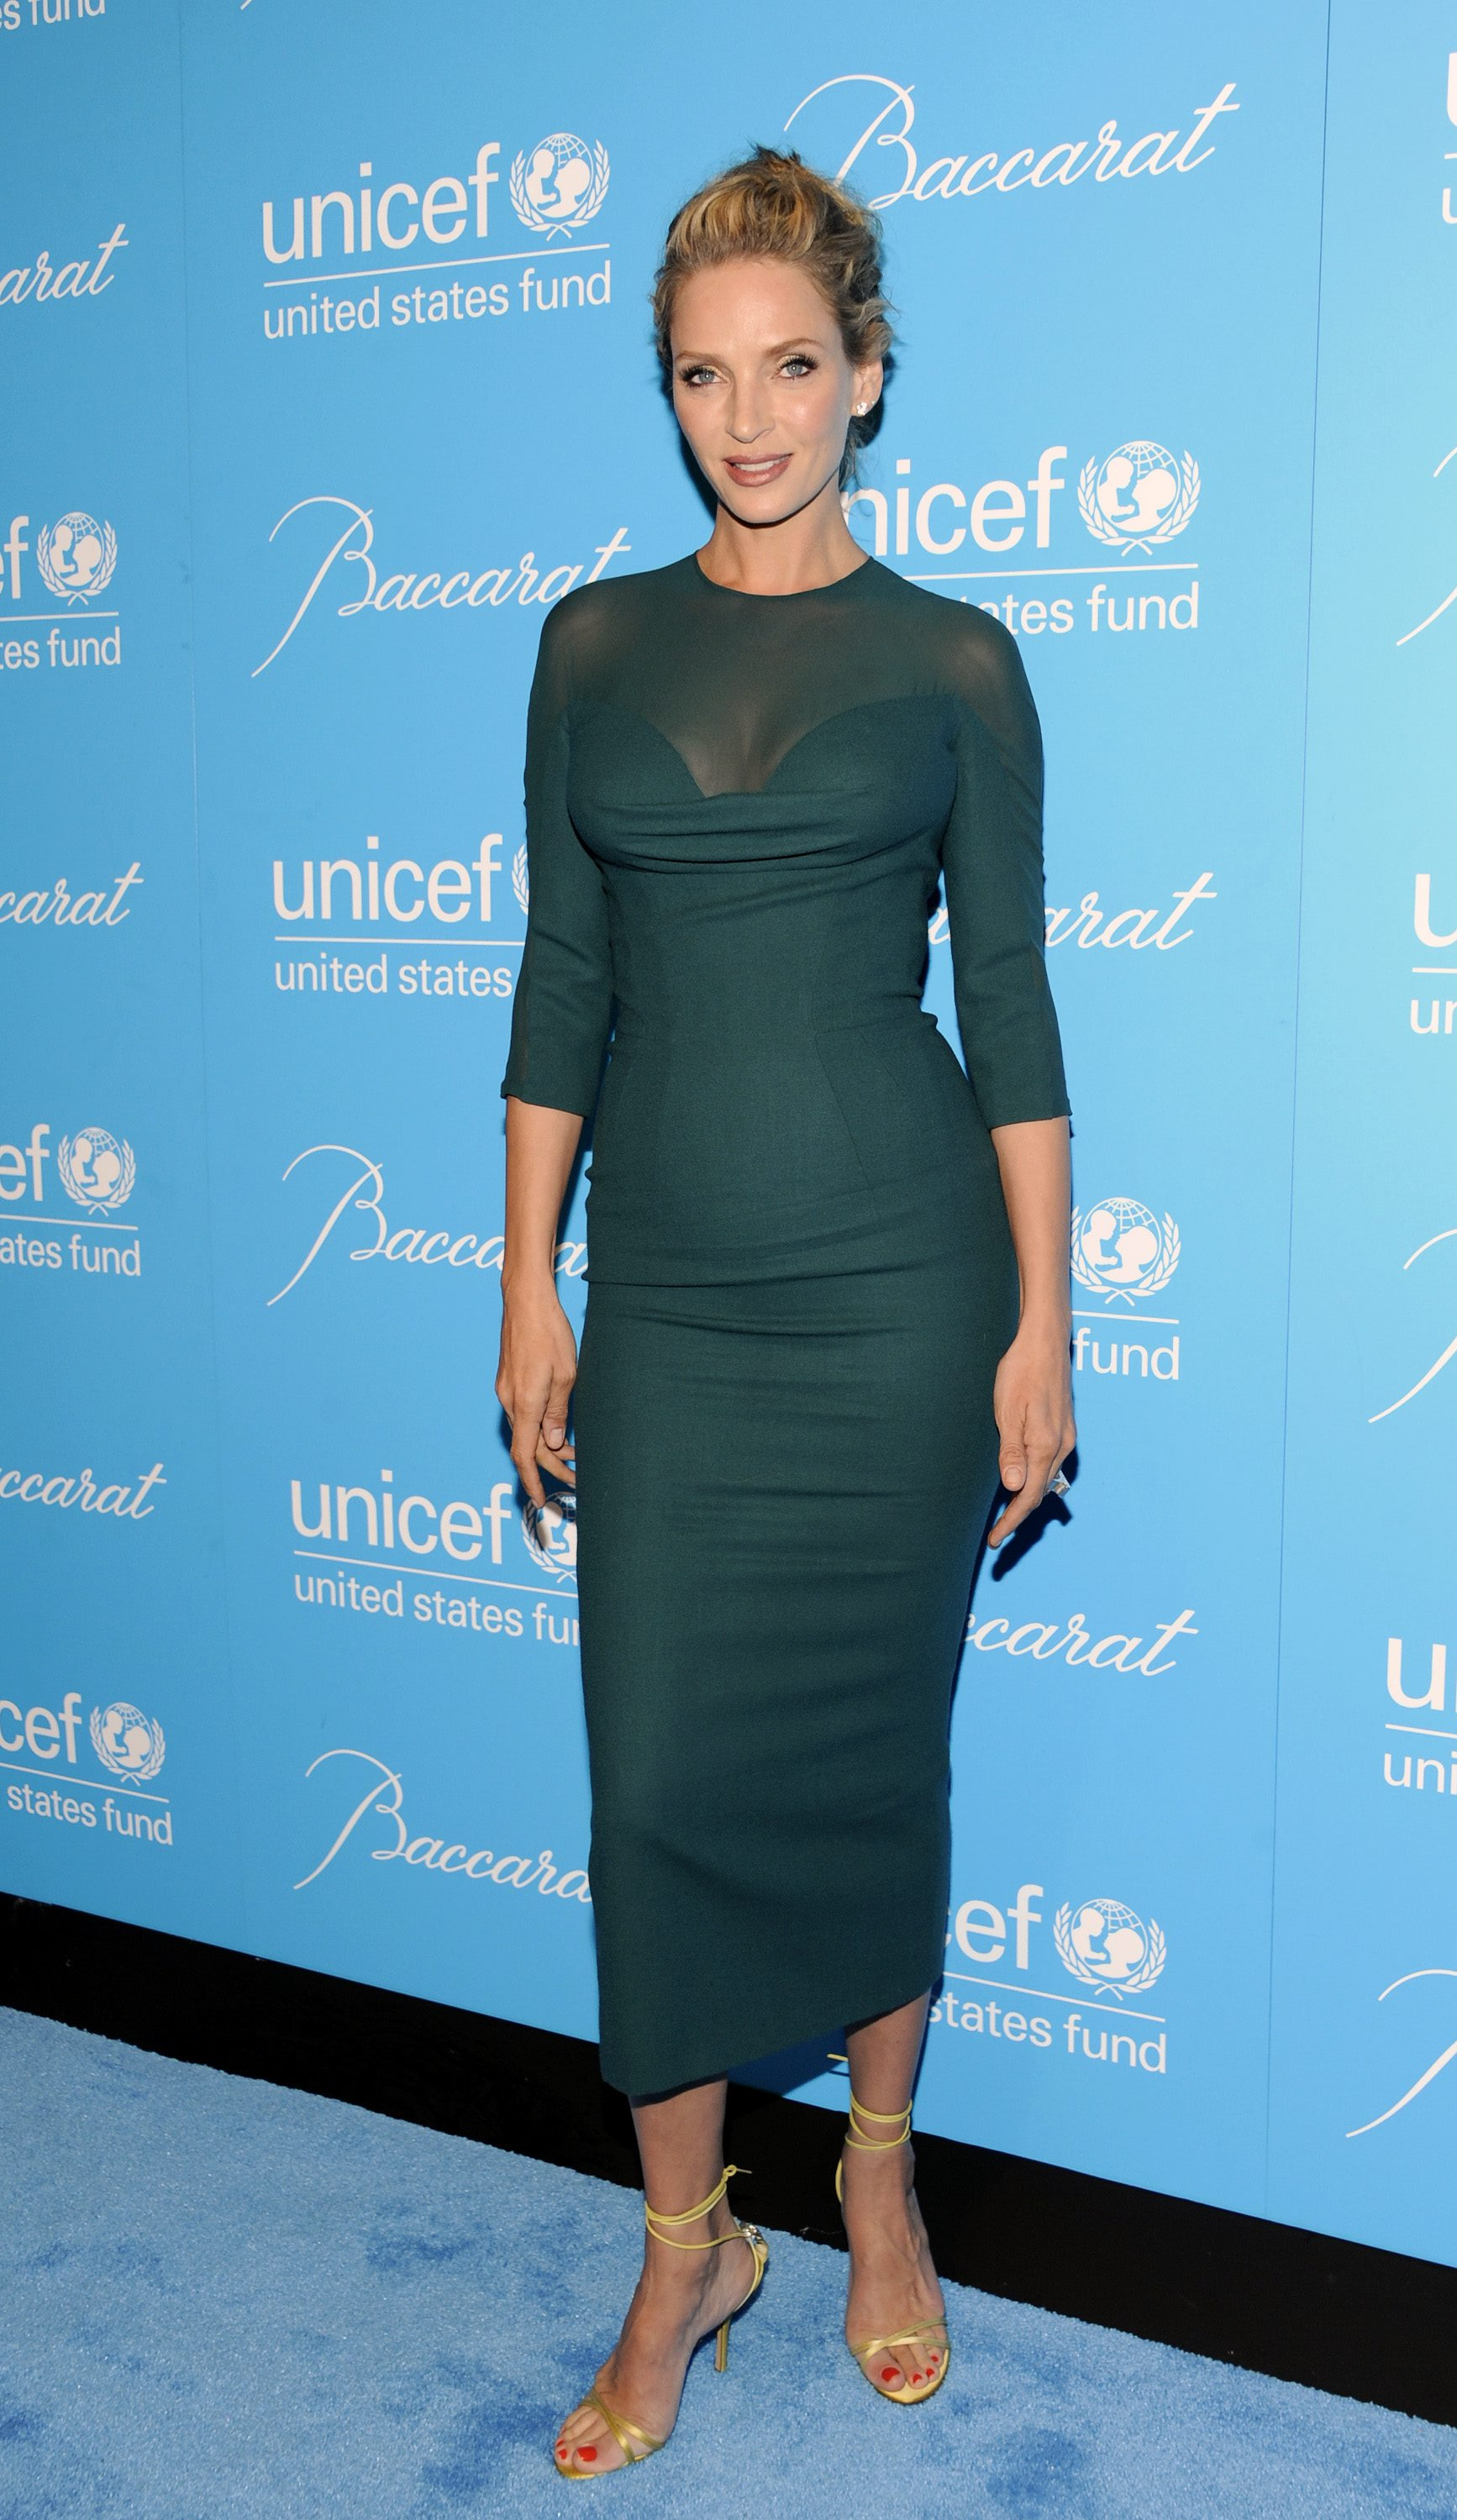 Actress Uma Thurman attends the 7th annual UNICEF Snowflake Ball at Cipriani 42nd Street on Tuesday, Nov. 29, 2011 in New York. (AP Photo/Evan Agostini)